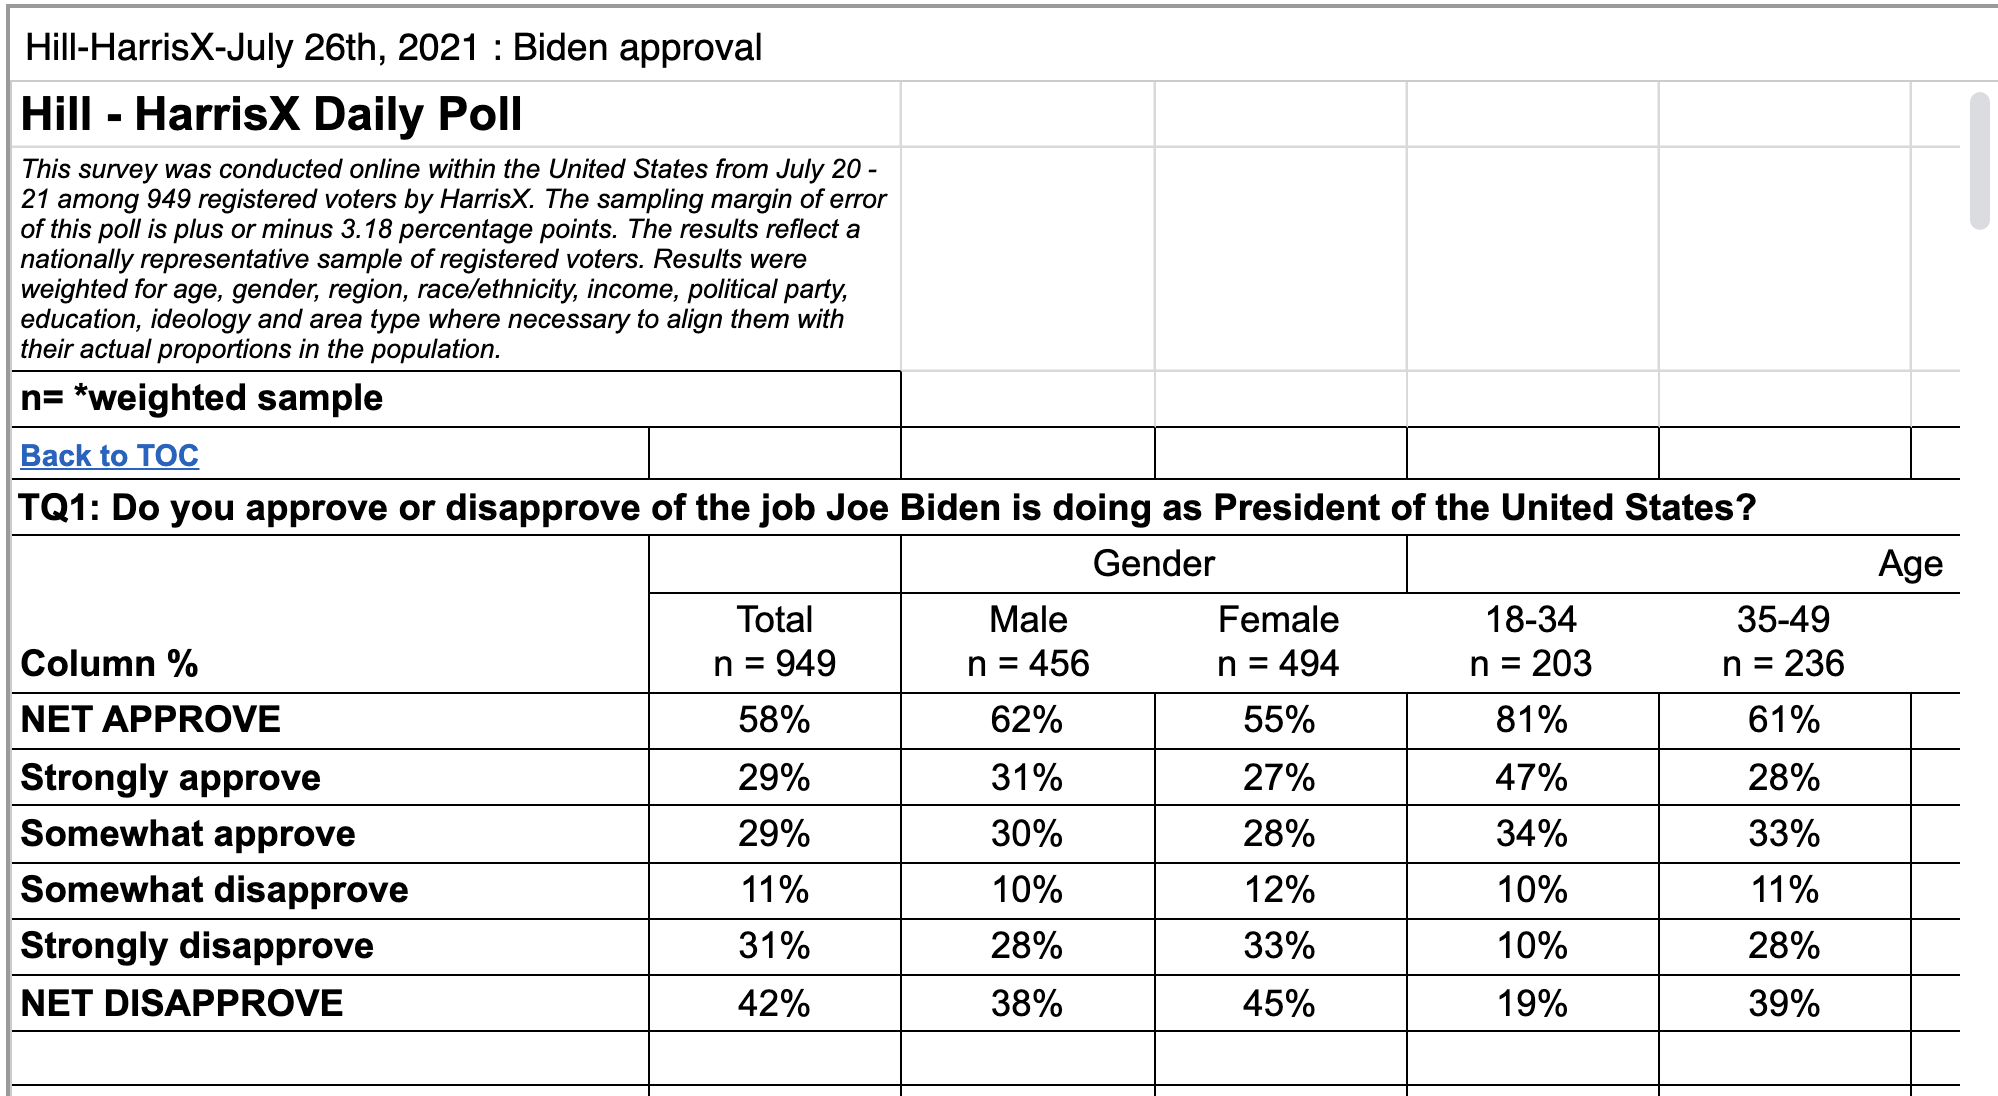 Screen-Shot-2021-07-26-at-12.39.43-PM Key Biden Policy Approval Rating Guess To 67% As GOP Falters Coronavirus Featured National Security Politics Top Stories